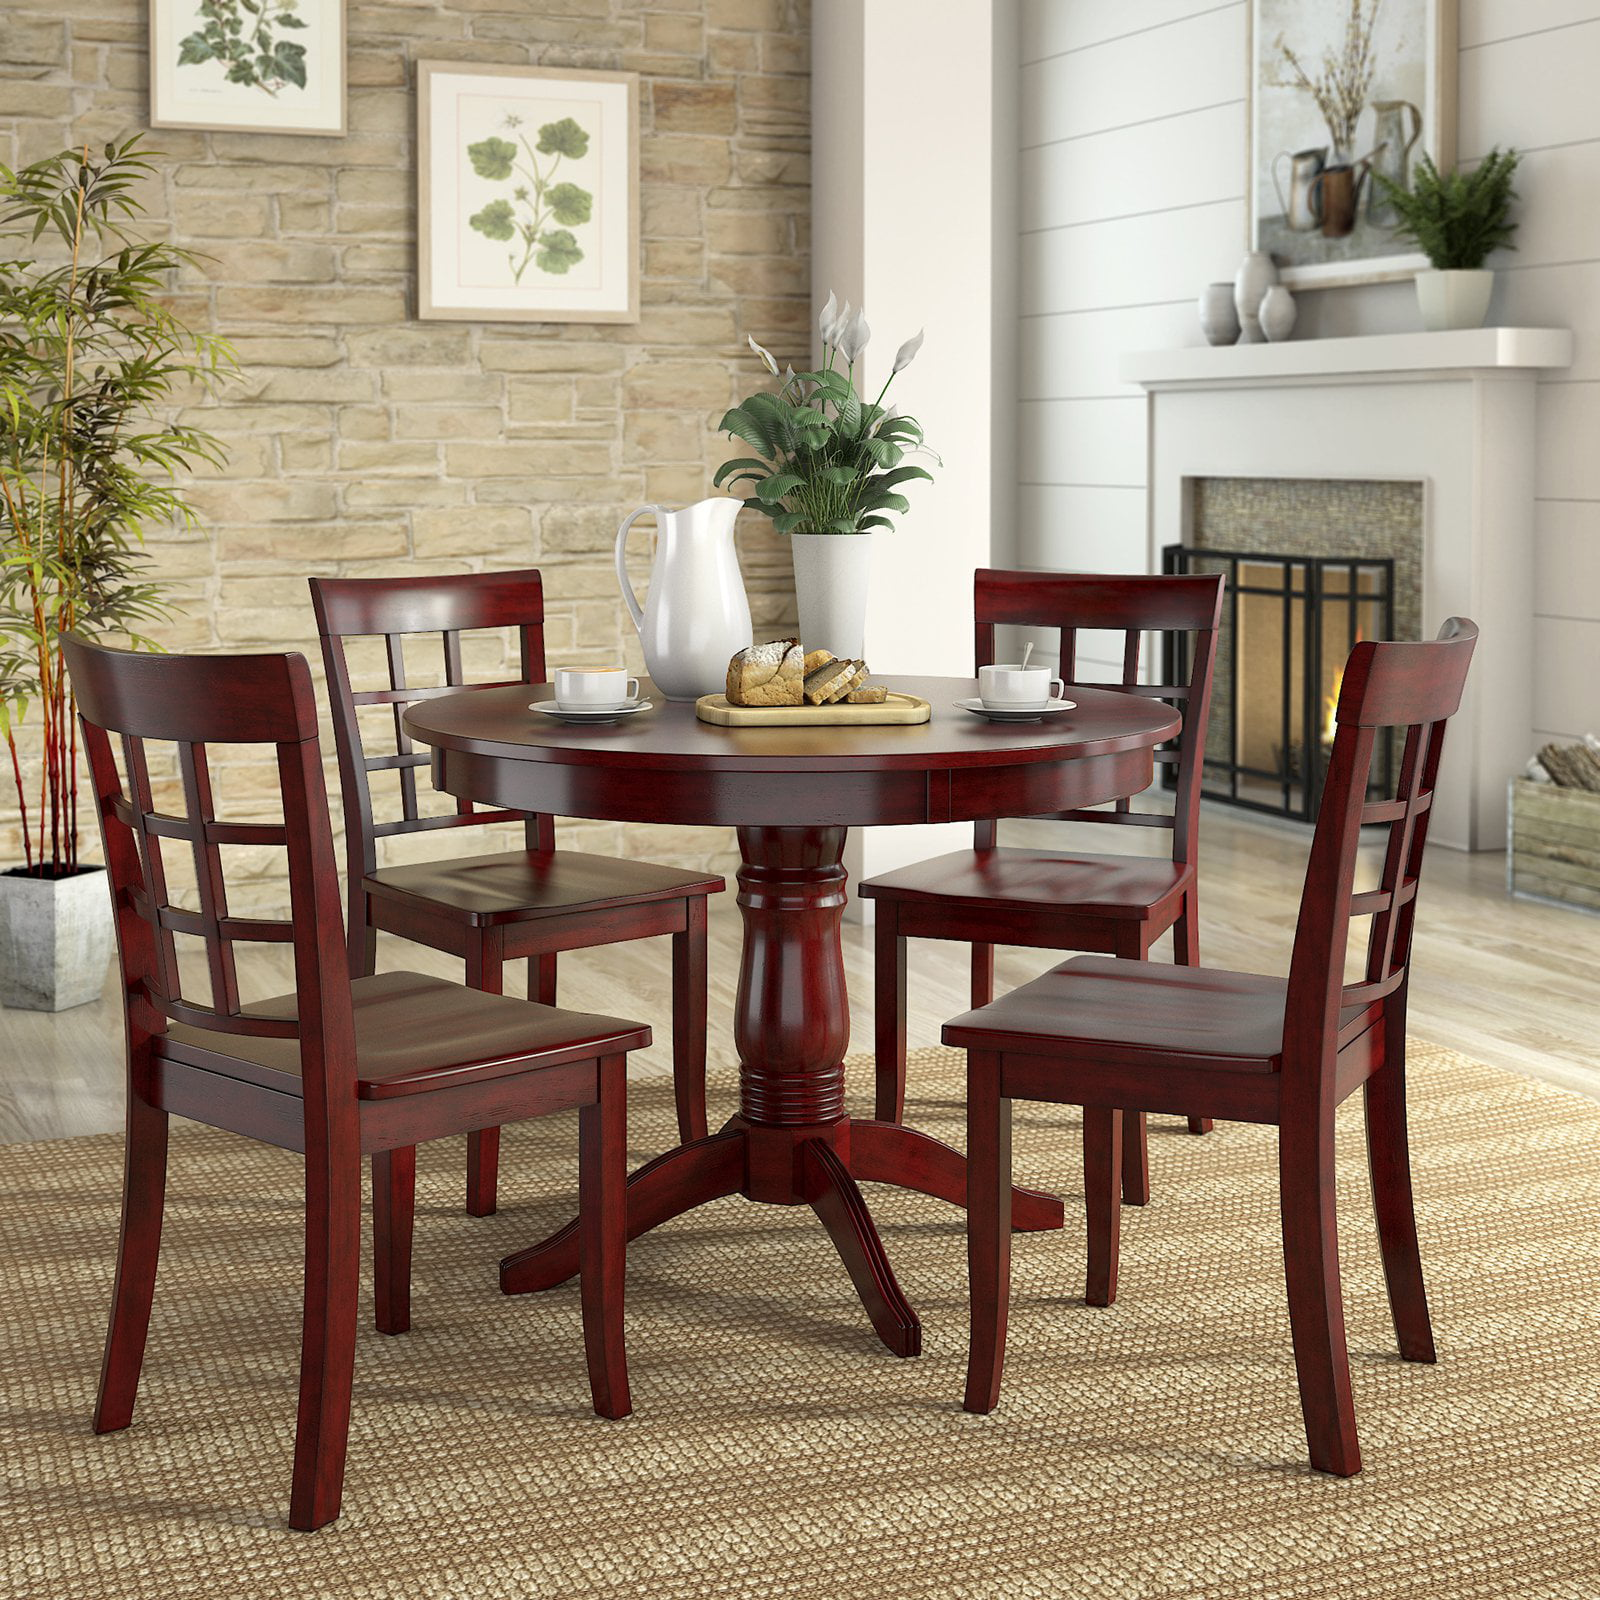 Lexington 5 Piece Wood Dining Set, Round Table and 4 ...